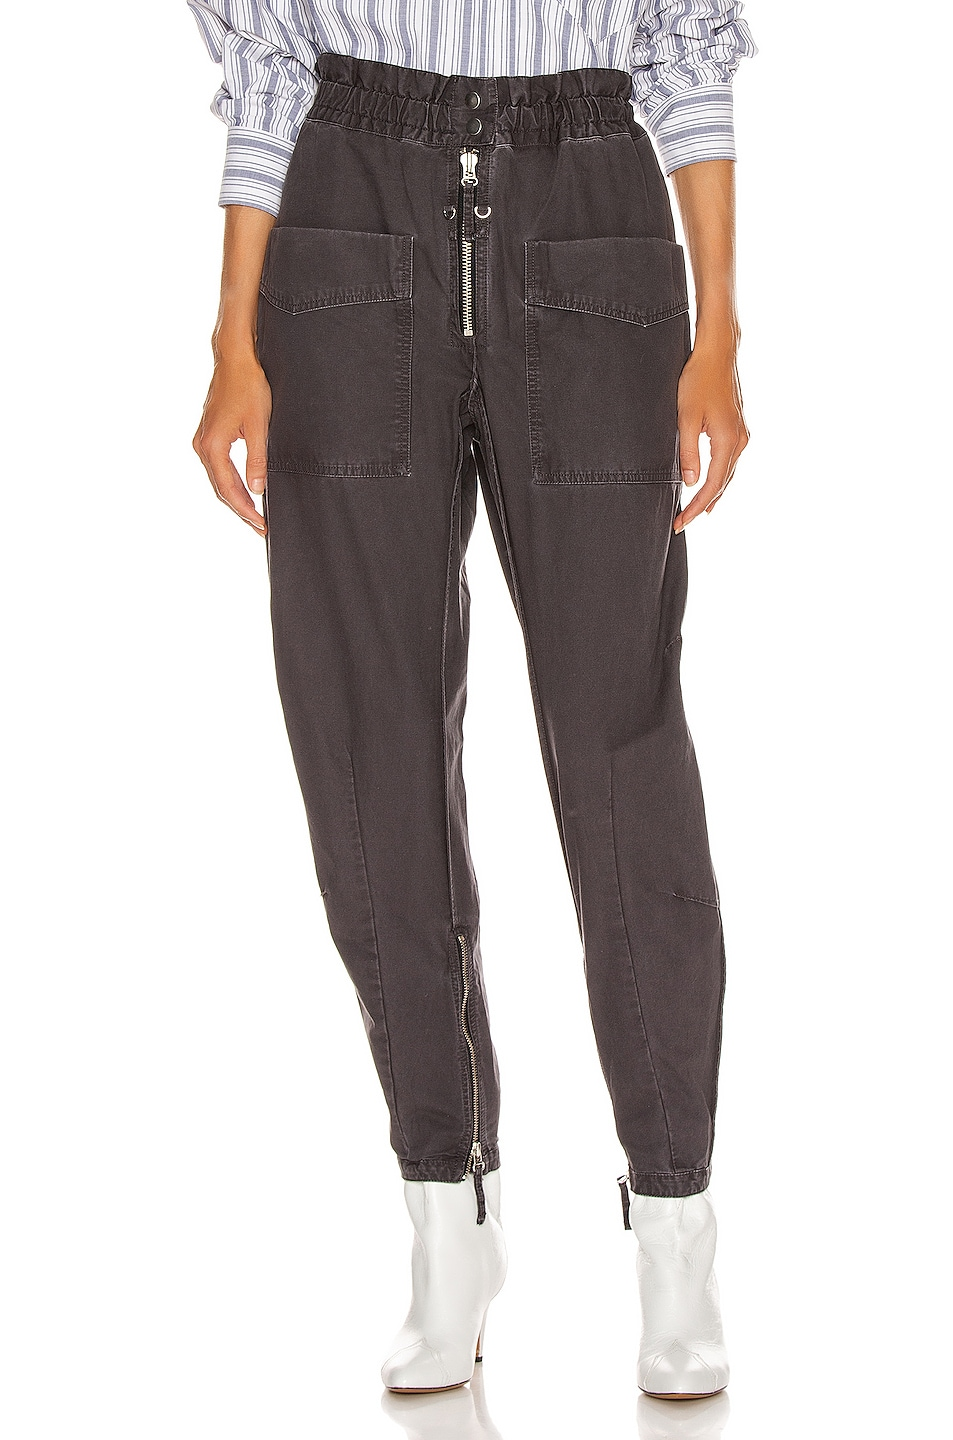 Image 1 of Isabel Marant Etoile Lecia Pant in Faded Black